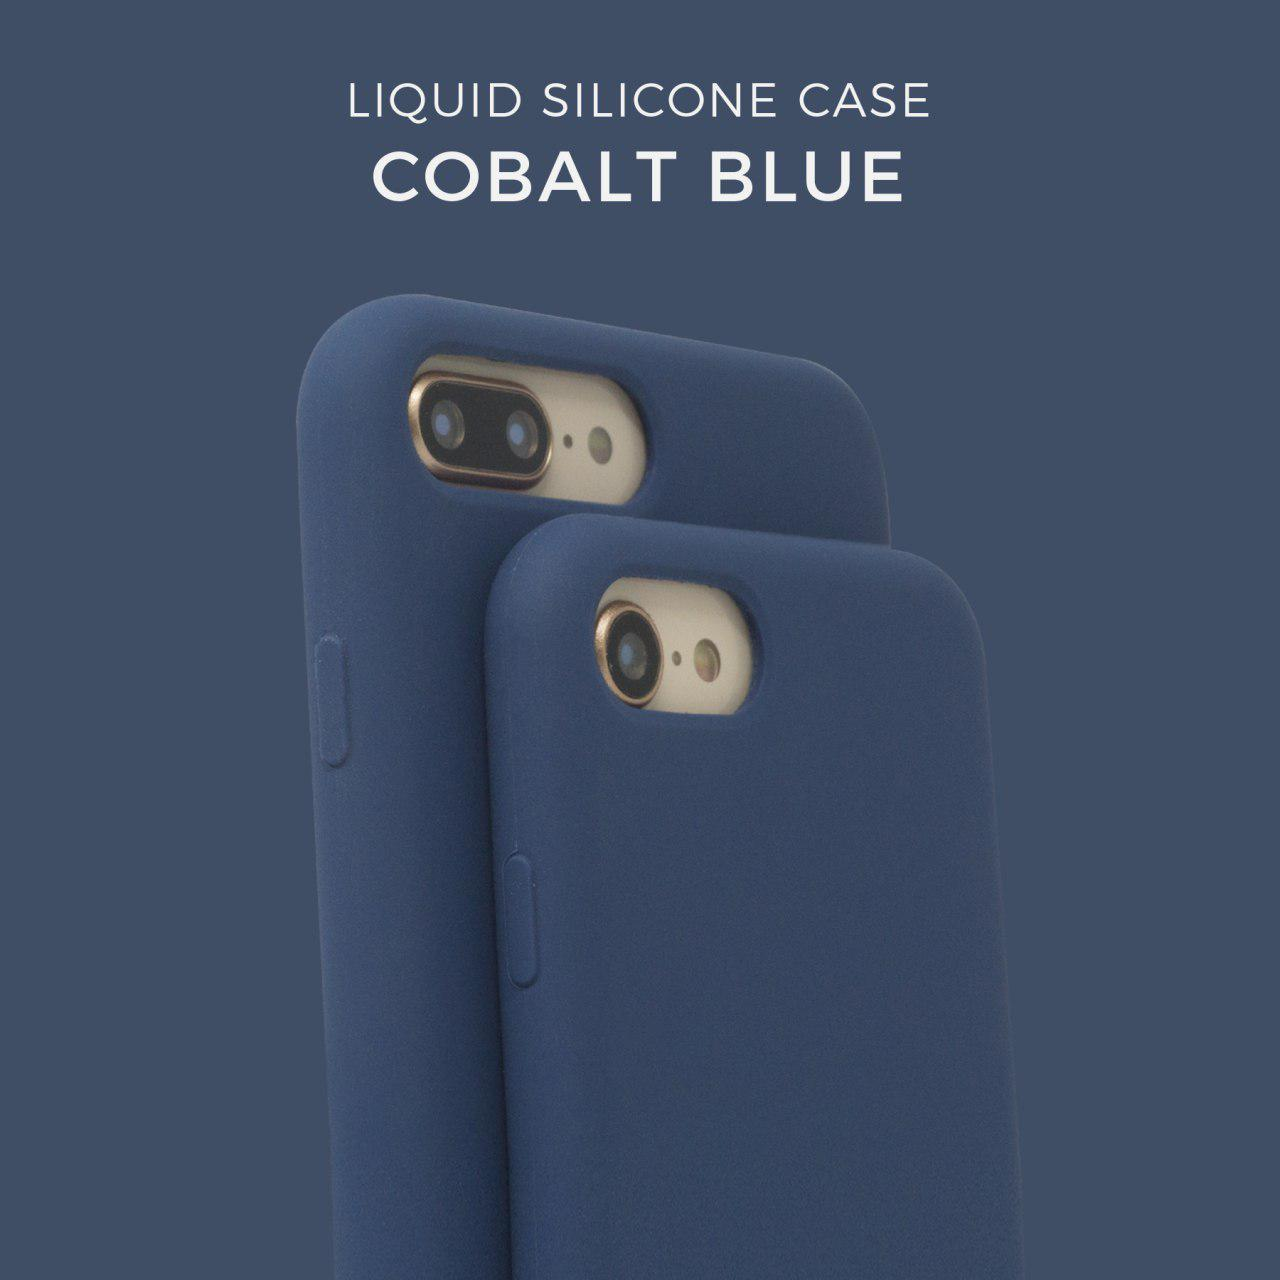 Liquid Silicone case Coblat Blue